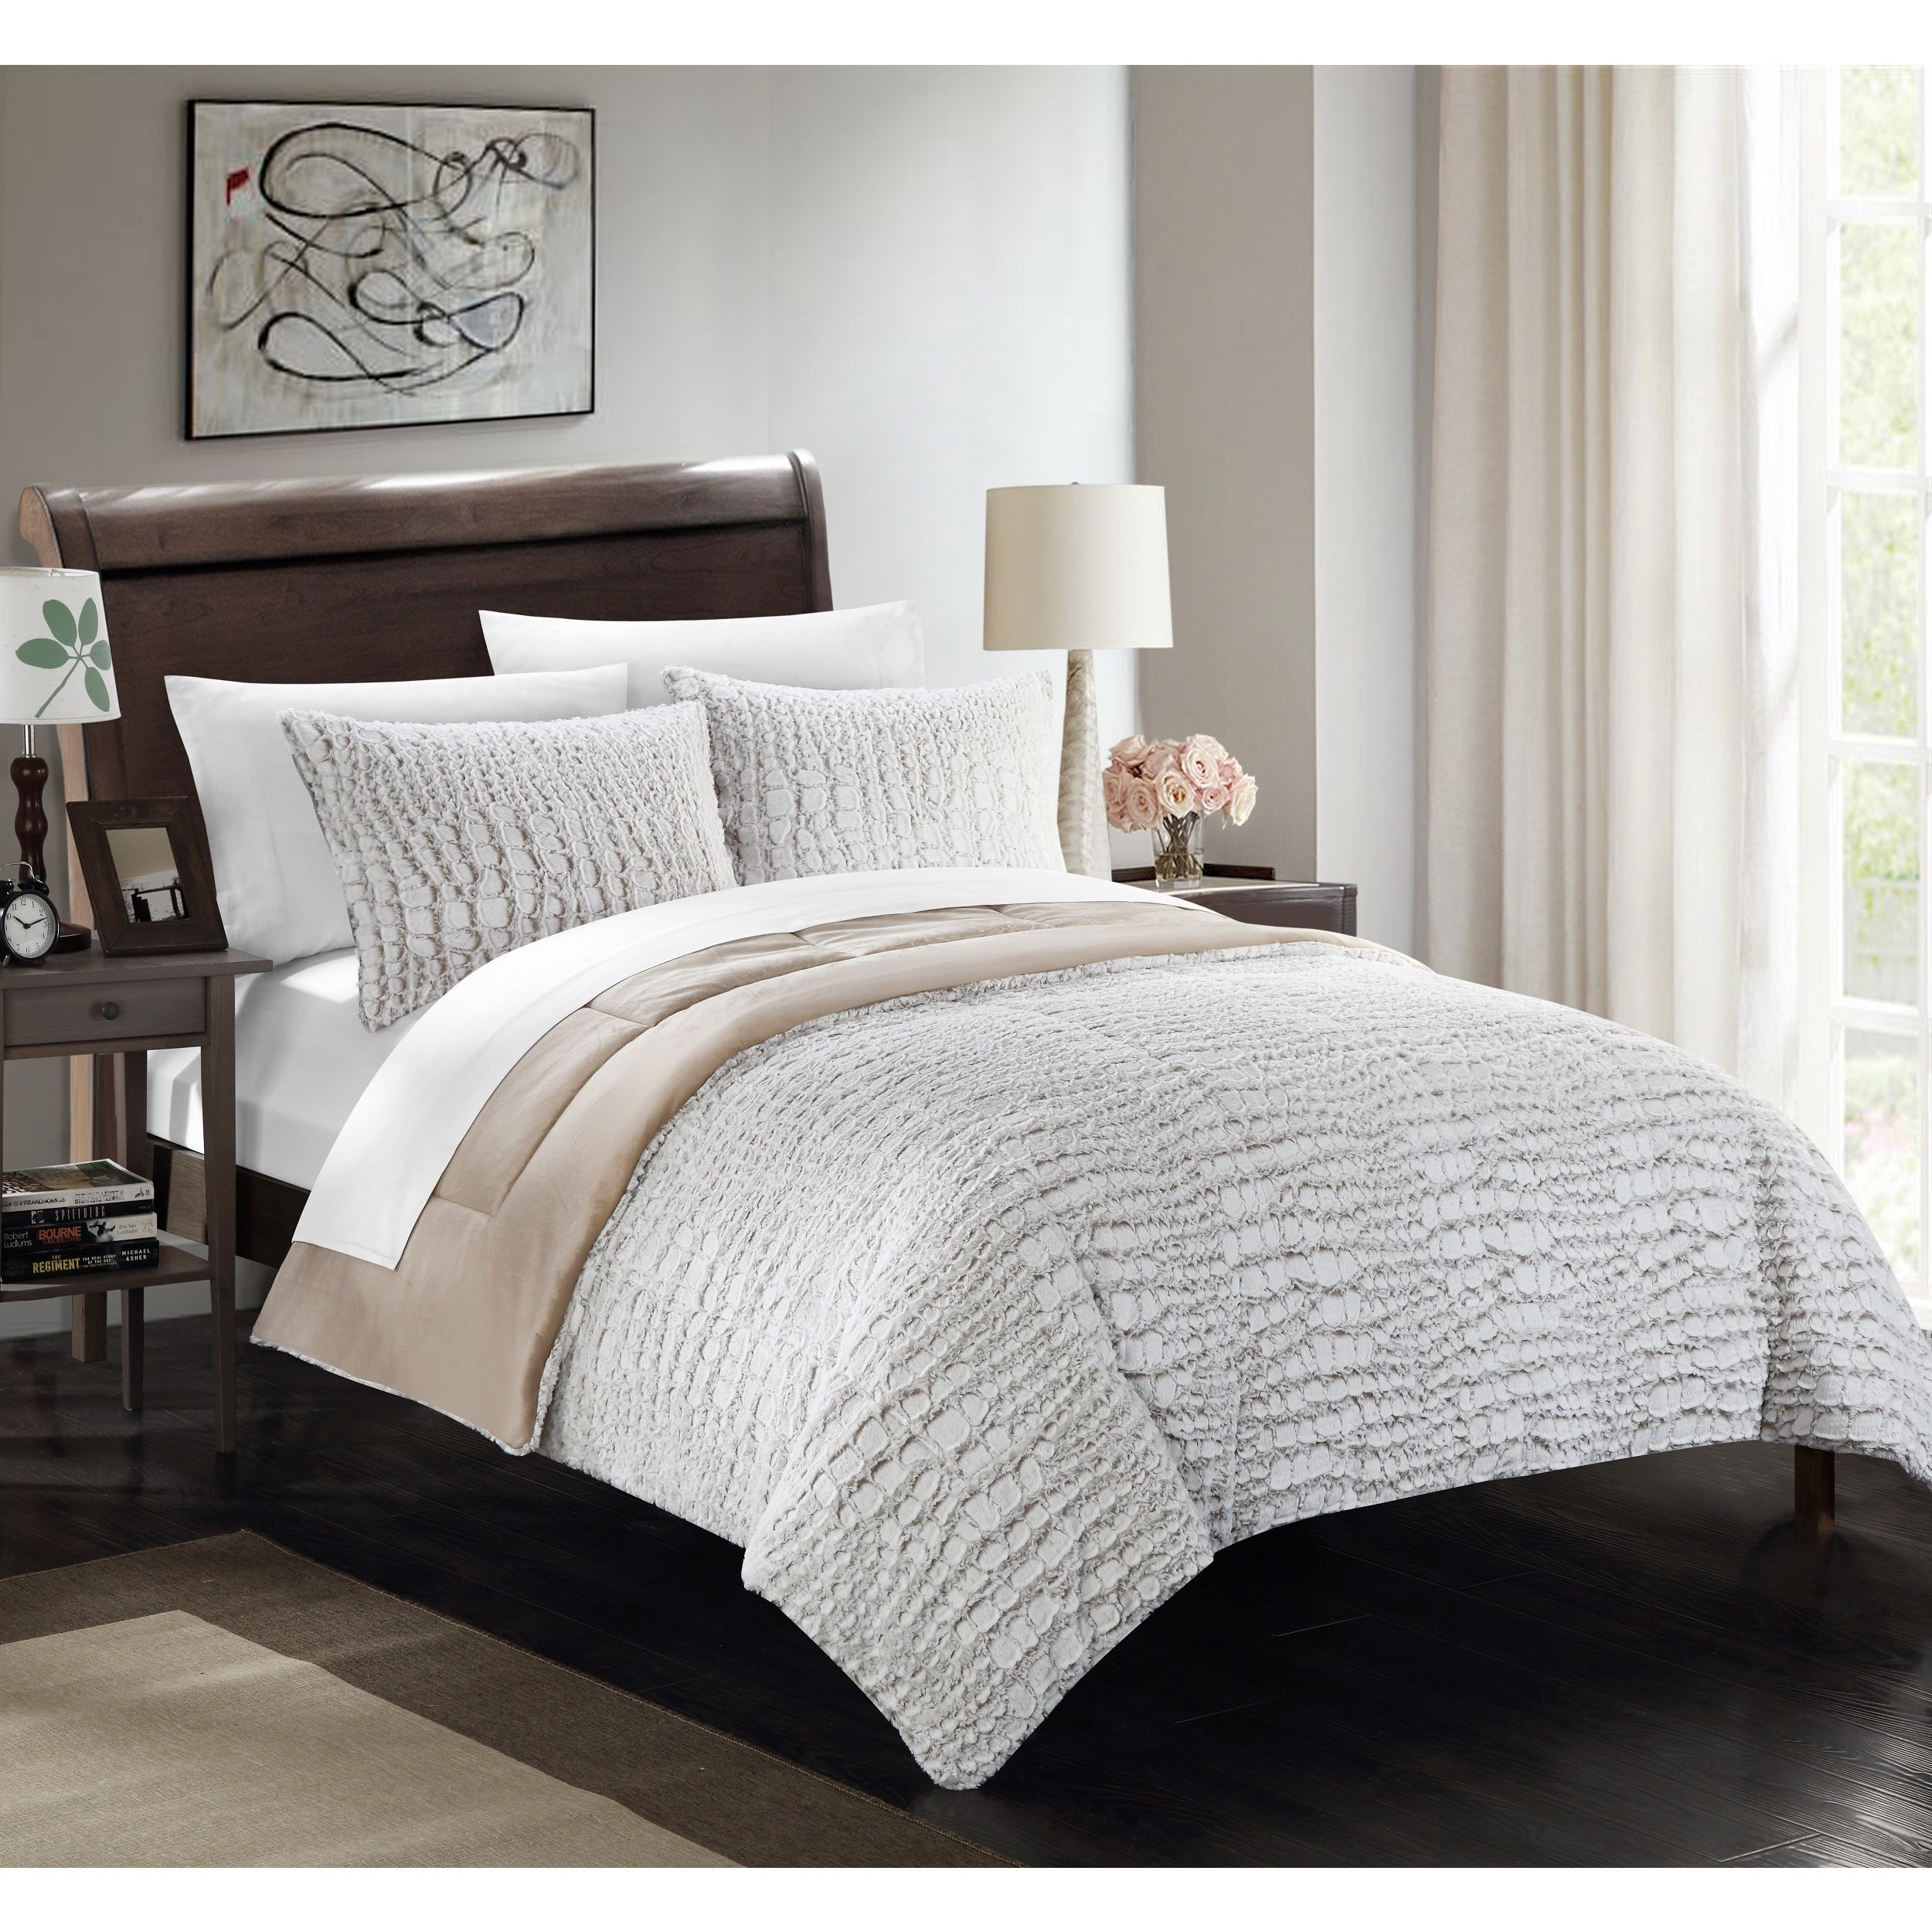 size u comforter throw grey luxury faux pillows king blankets mahogany mink brown throws and fur elegant couture pillow